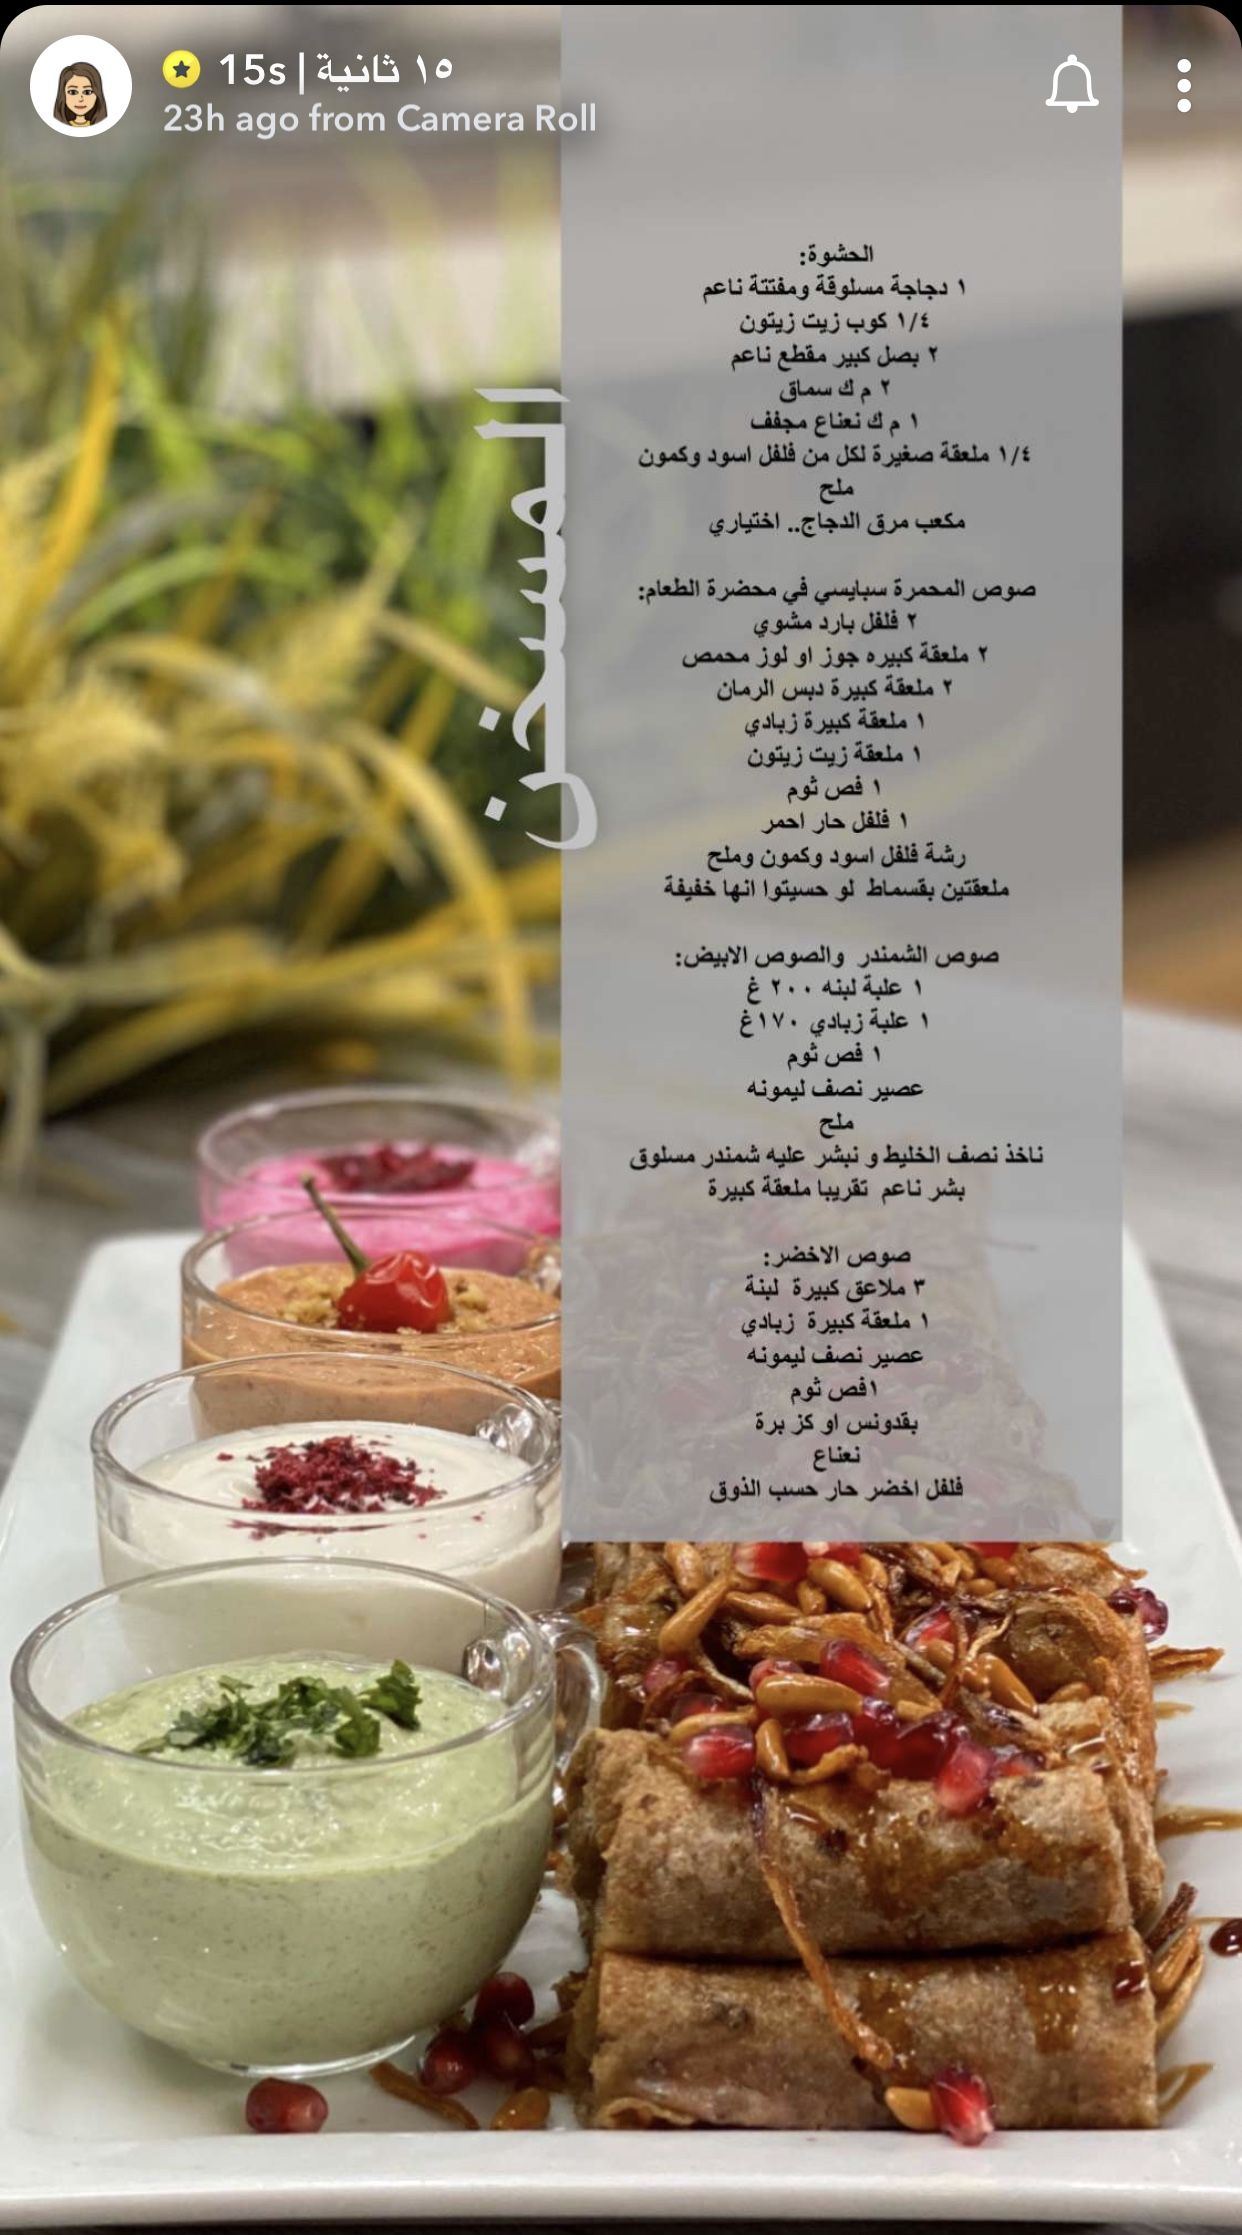 Pin By Nora Nora On Cooking In 2021 Cooking Recipes Desserts Diy Food Recipes Cookout Food